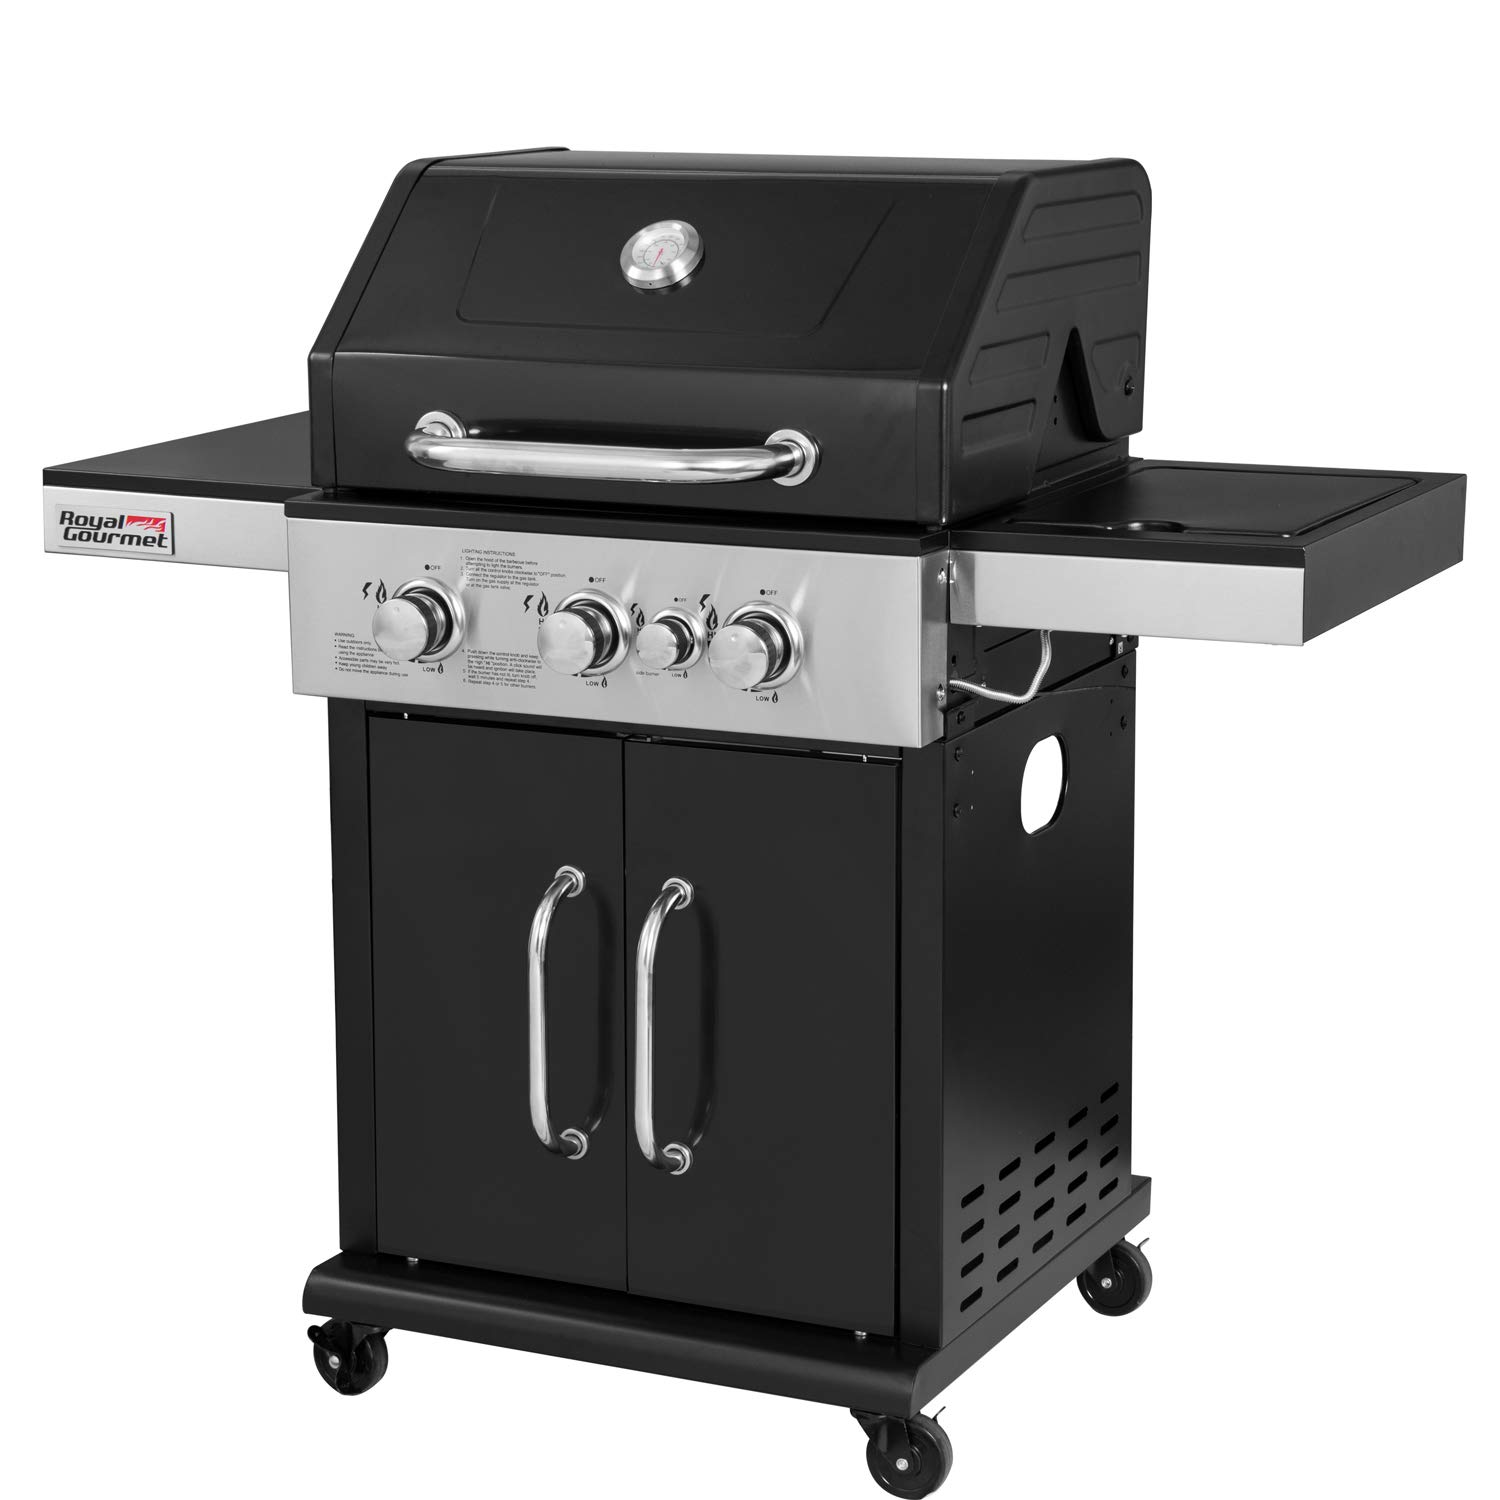 Royal Gourmet GG3201S Cabinet Liquid Propane Gas Grill with Side Burner, for Outdoor Cooking Camping, 3-Burner, Black